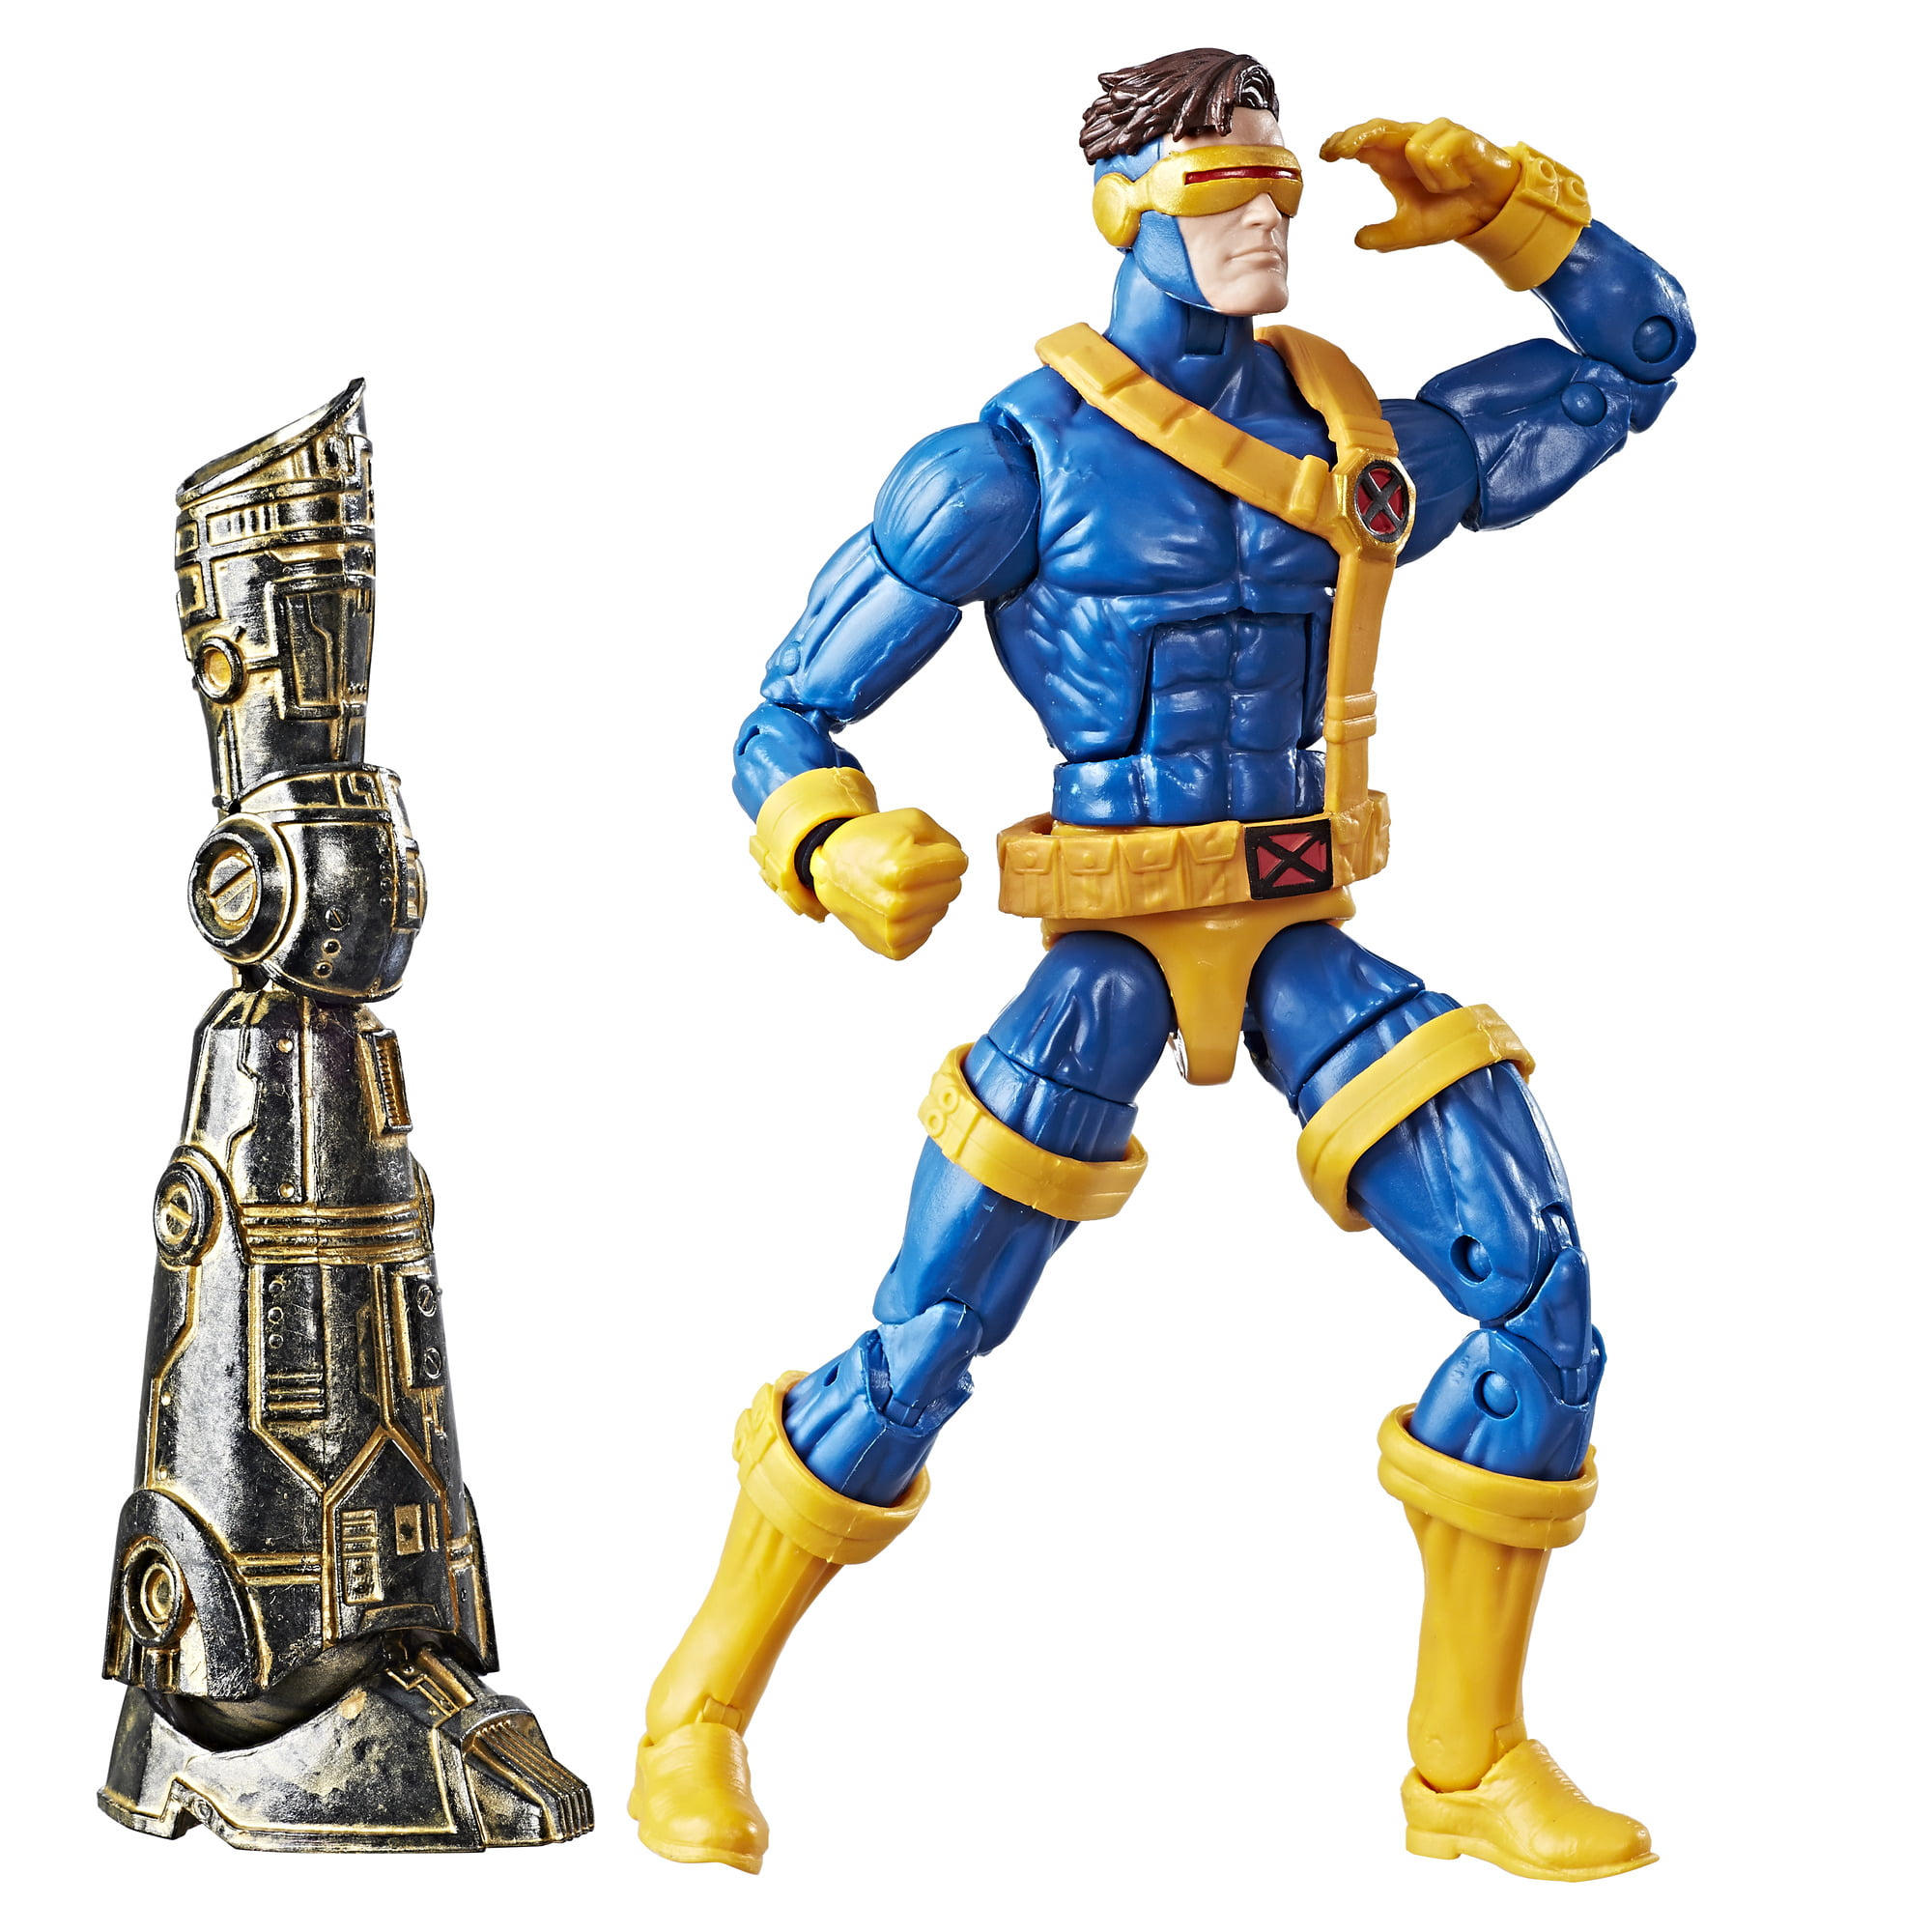 Marvel X-Men 6-Inch Legends Series Marvels Cyclops by Hasbro